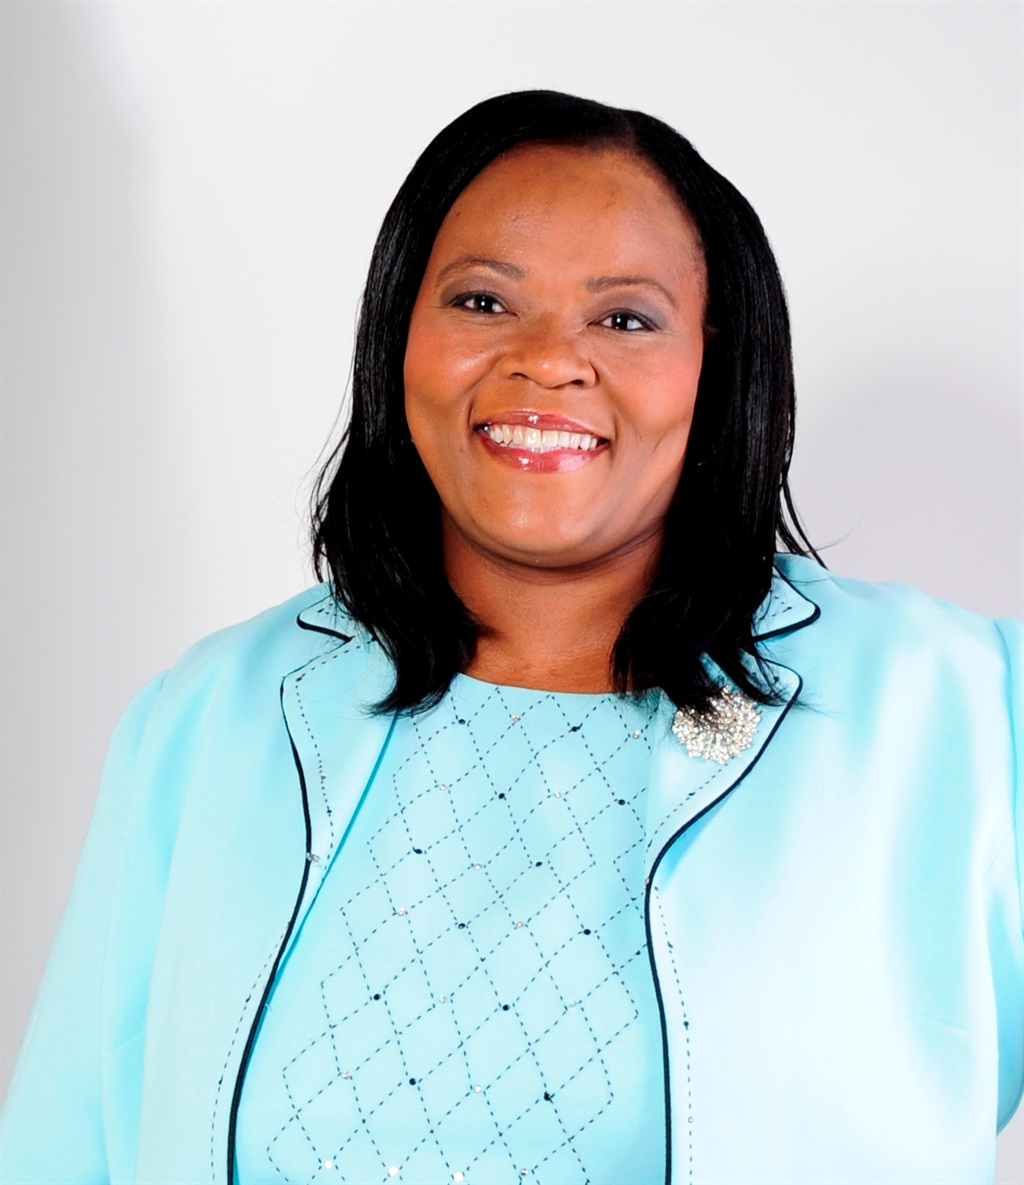 Technical executive of the South African Institute of Professional Accountants', Faith Ngwenya.